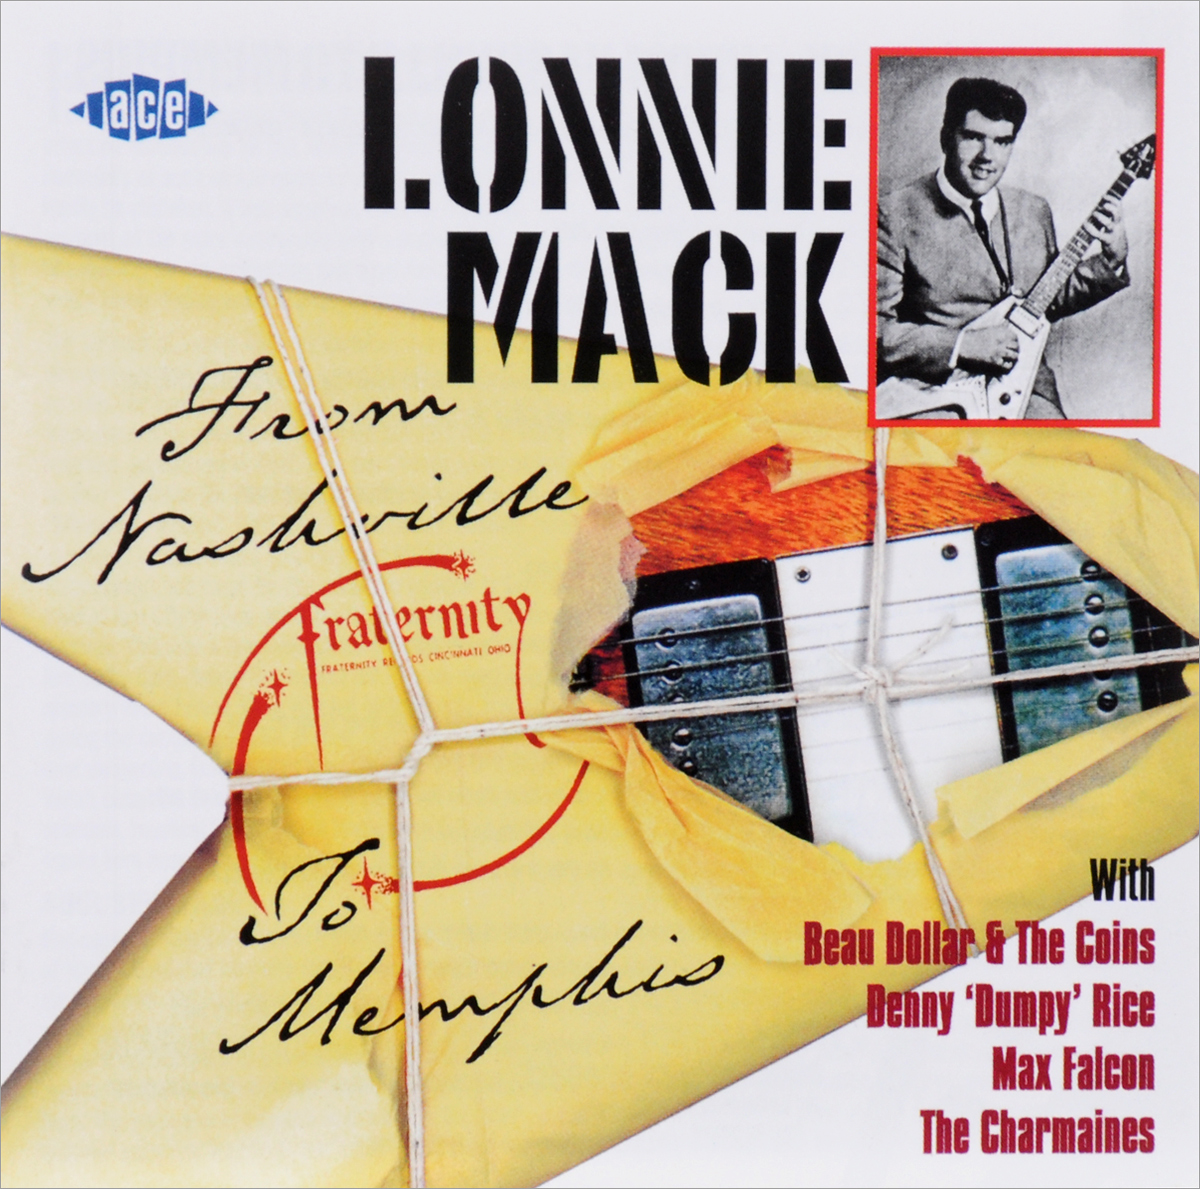 Lonnie Mack. From Nashville To Memphis